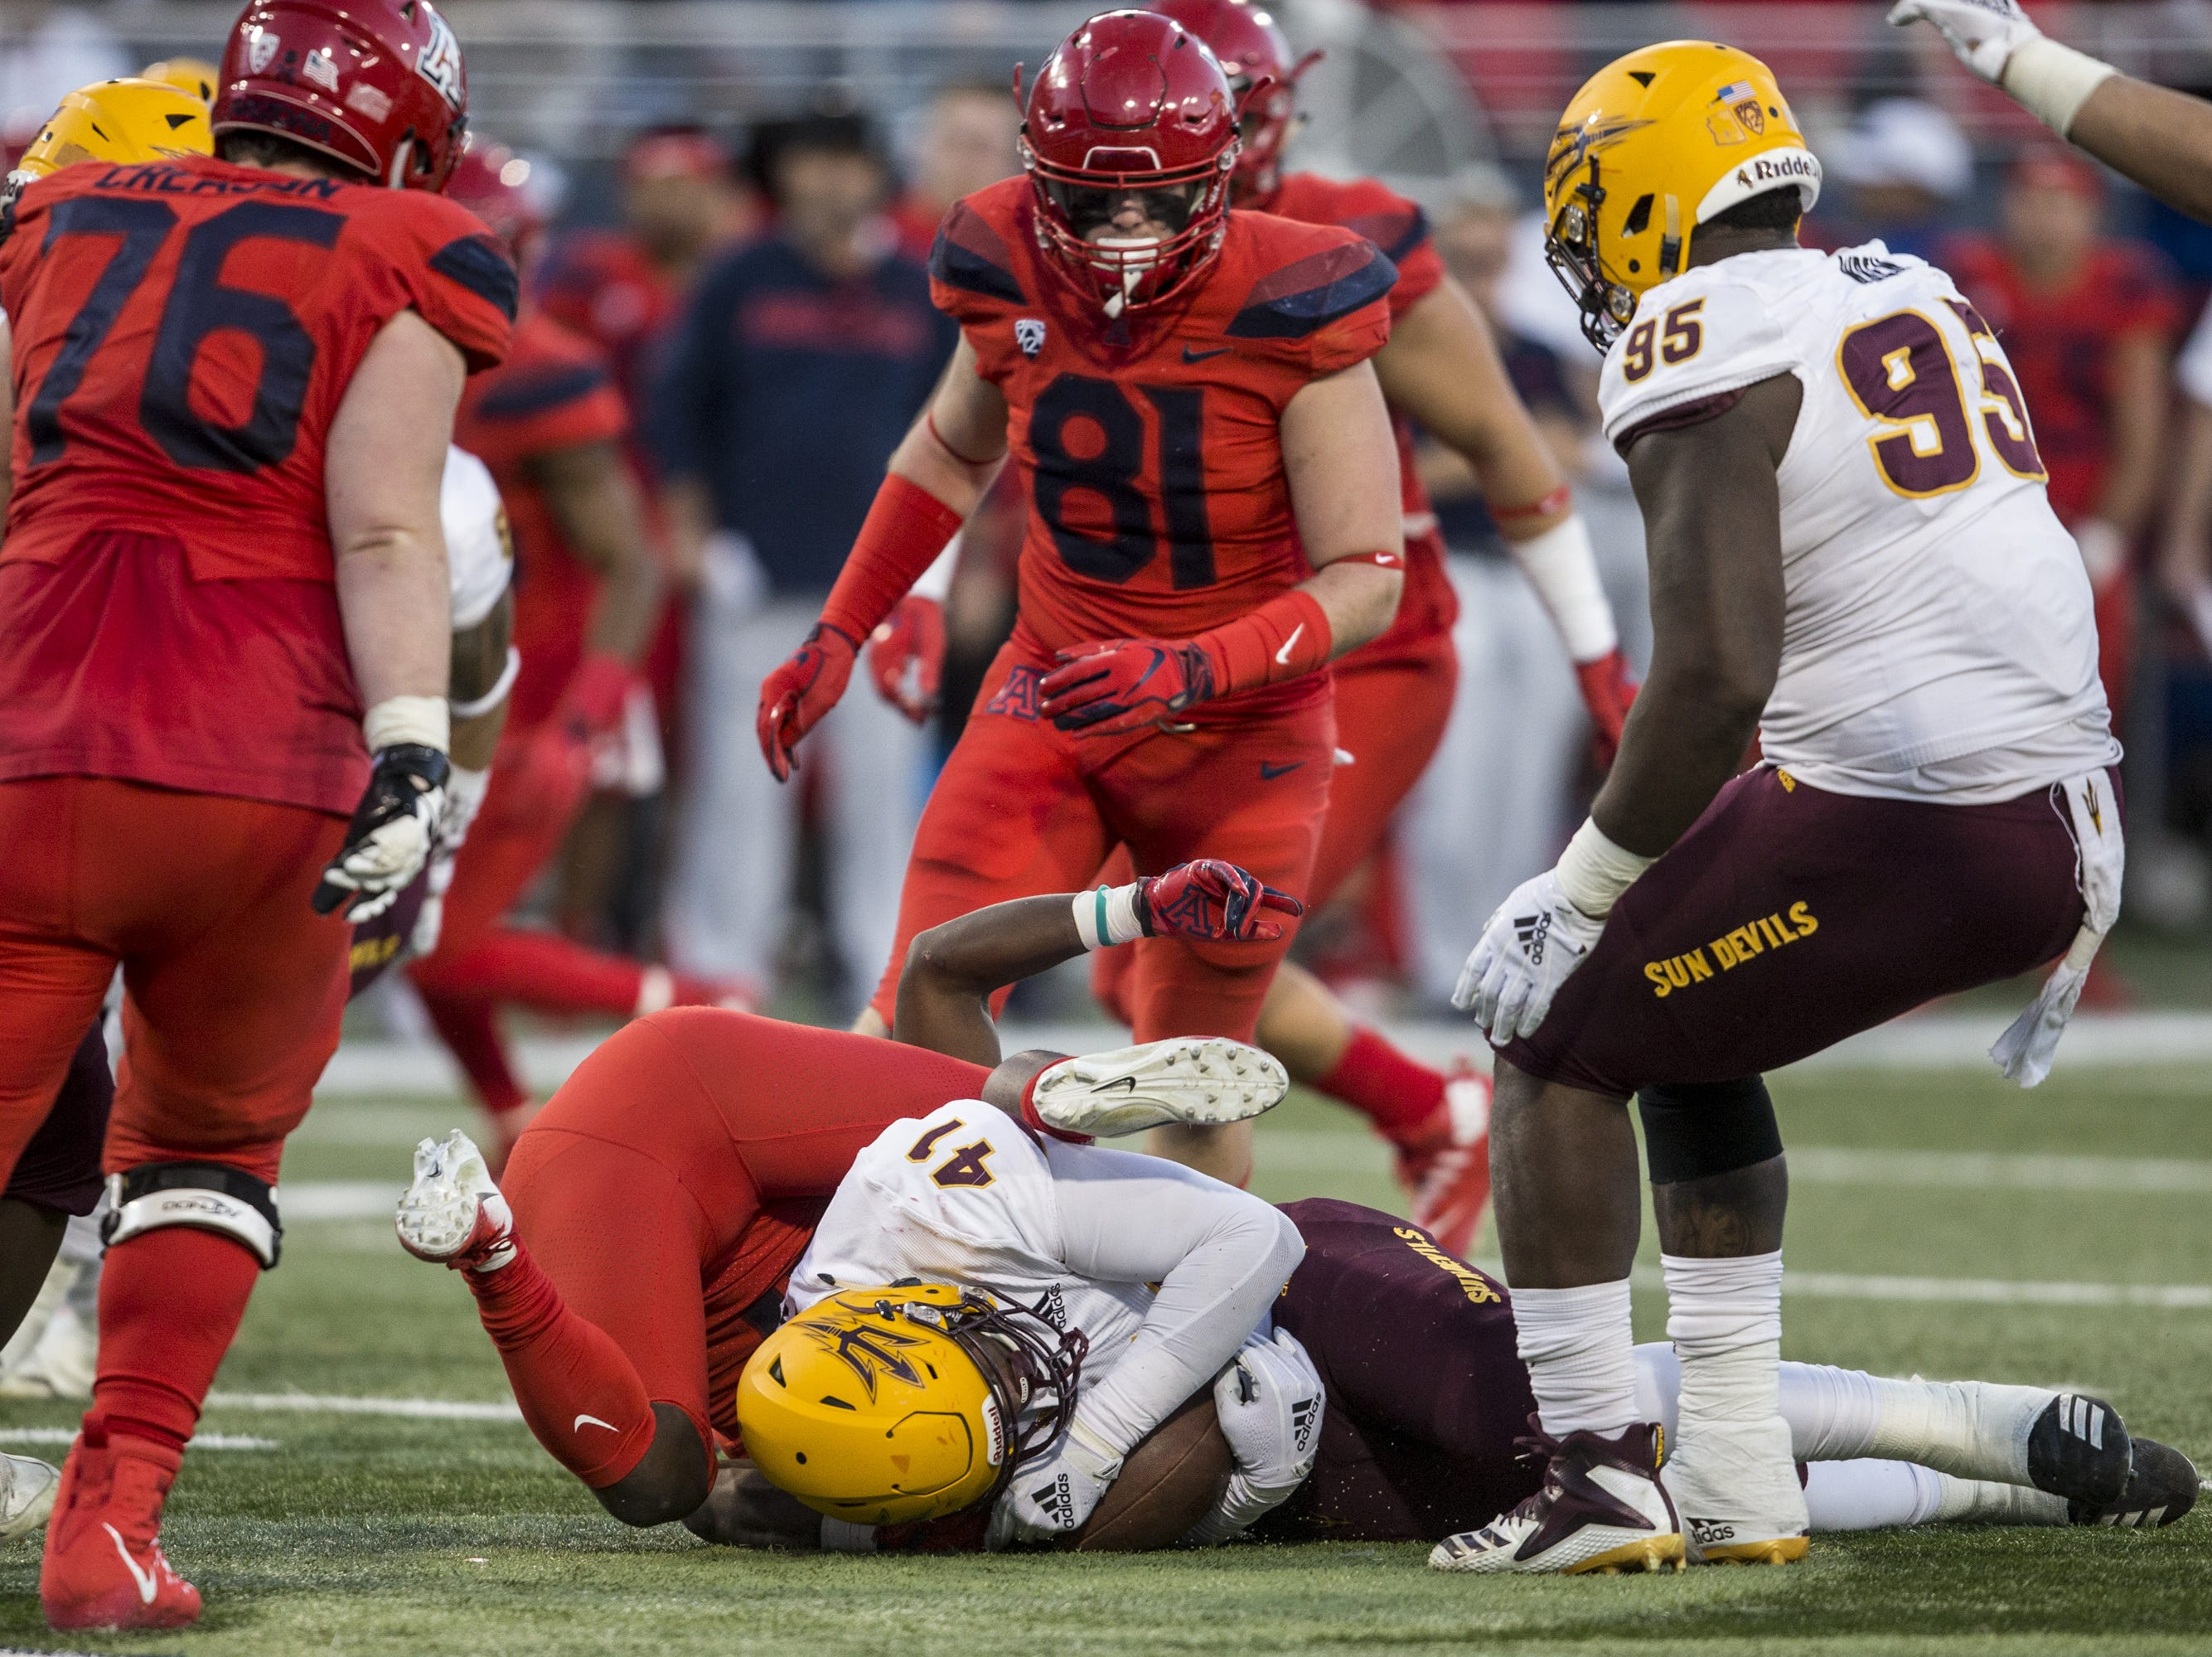 Arizona State's Tyler Johnson recovers a fumble against Arizona during the second half of the Territorial Cup on Saturday, Nov. 24, 2018, at Arizona Stadium in Tucson, Ariz. Arizona State won, 41-40.